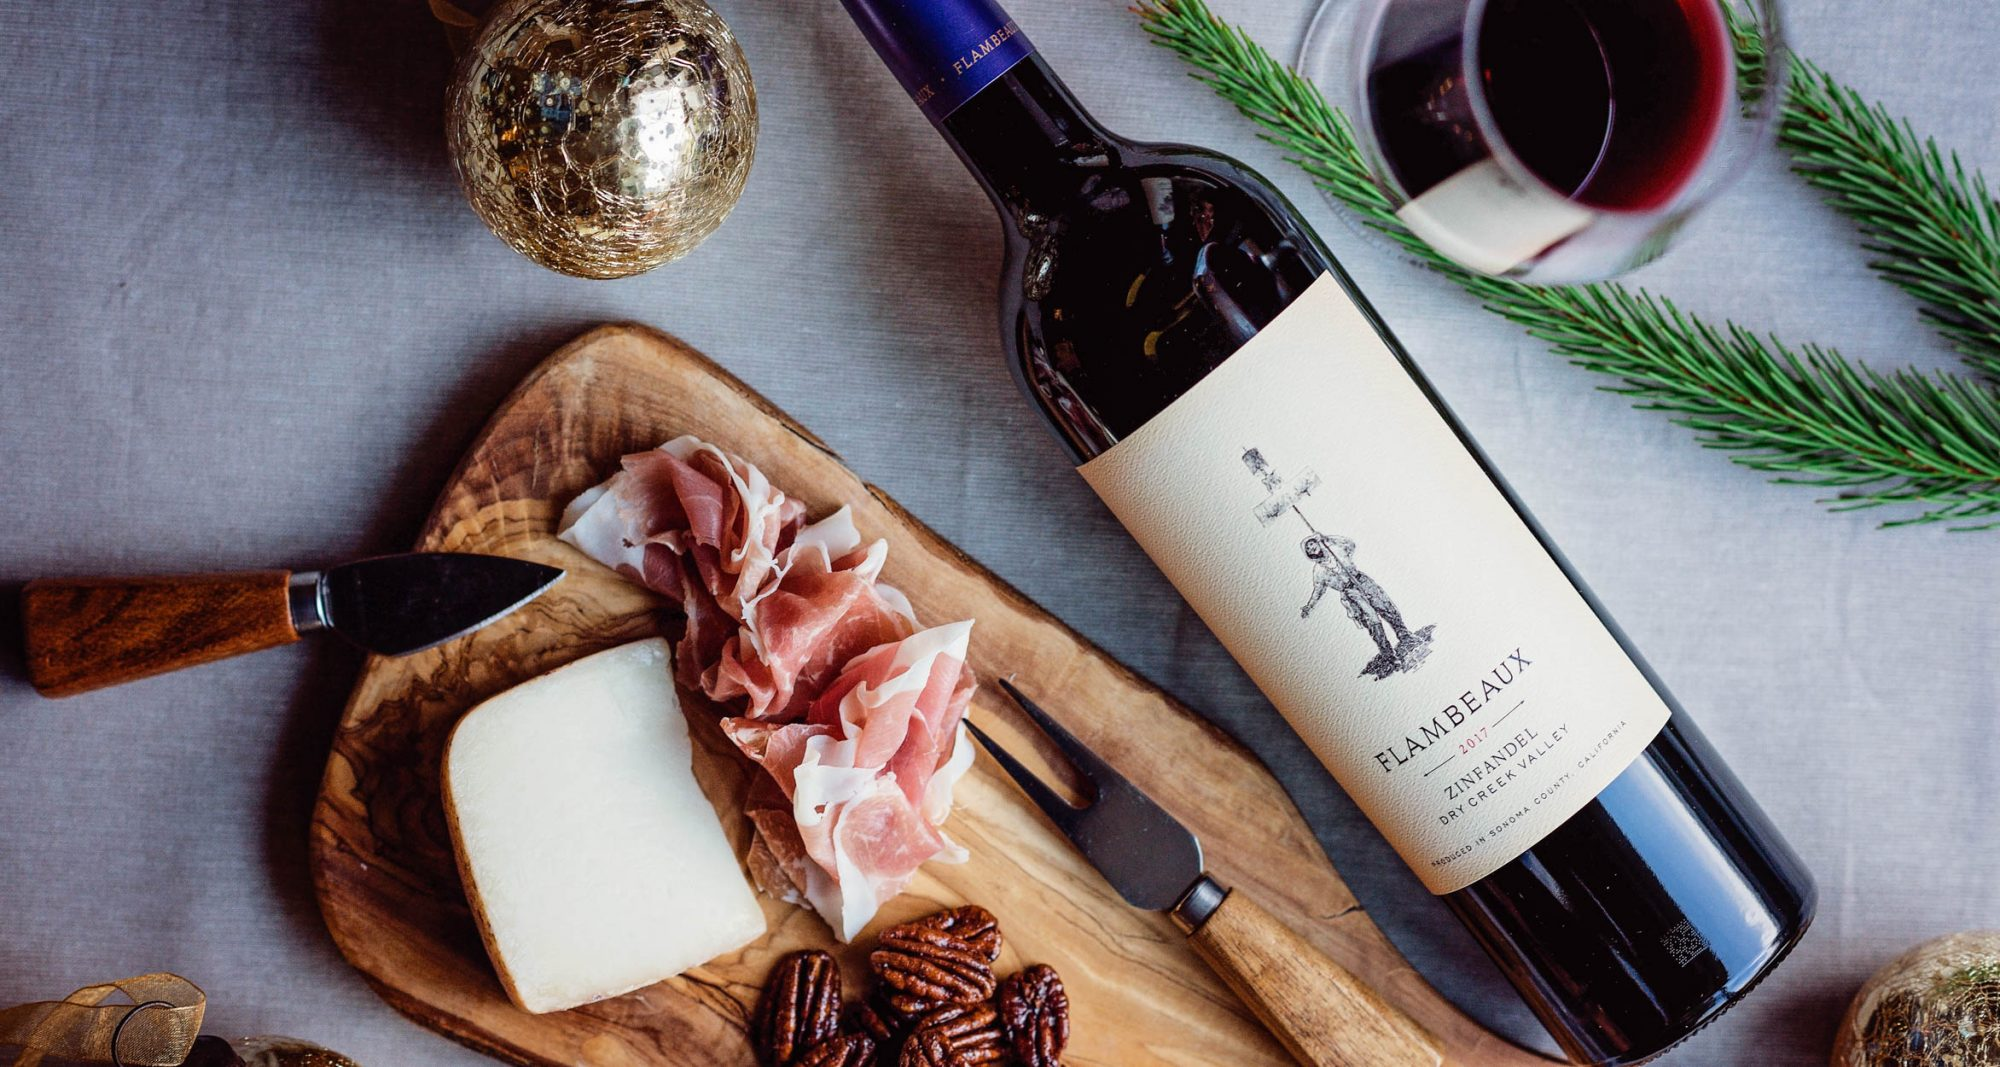 Charcuterie and Cheese alongside a bottle of Flambeaux Zinfandel